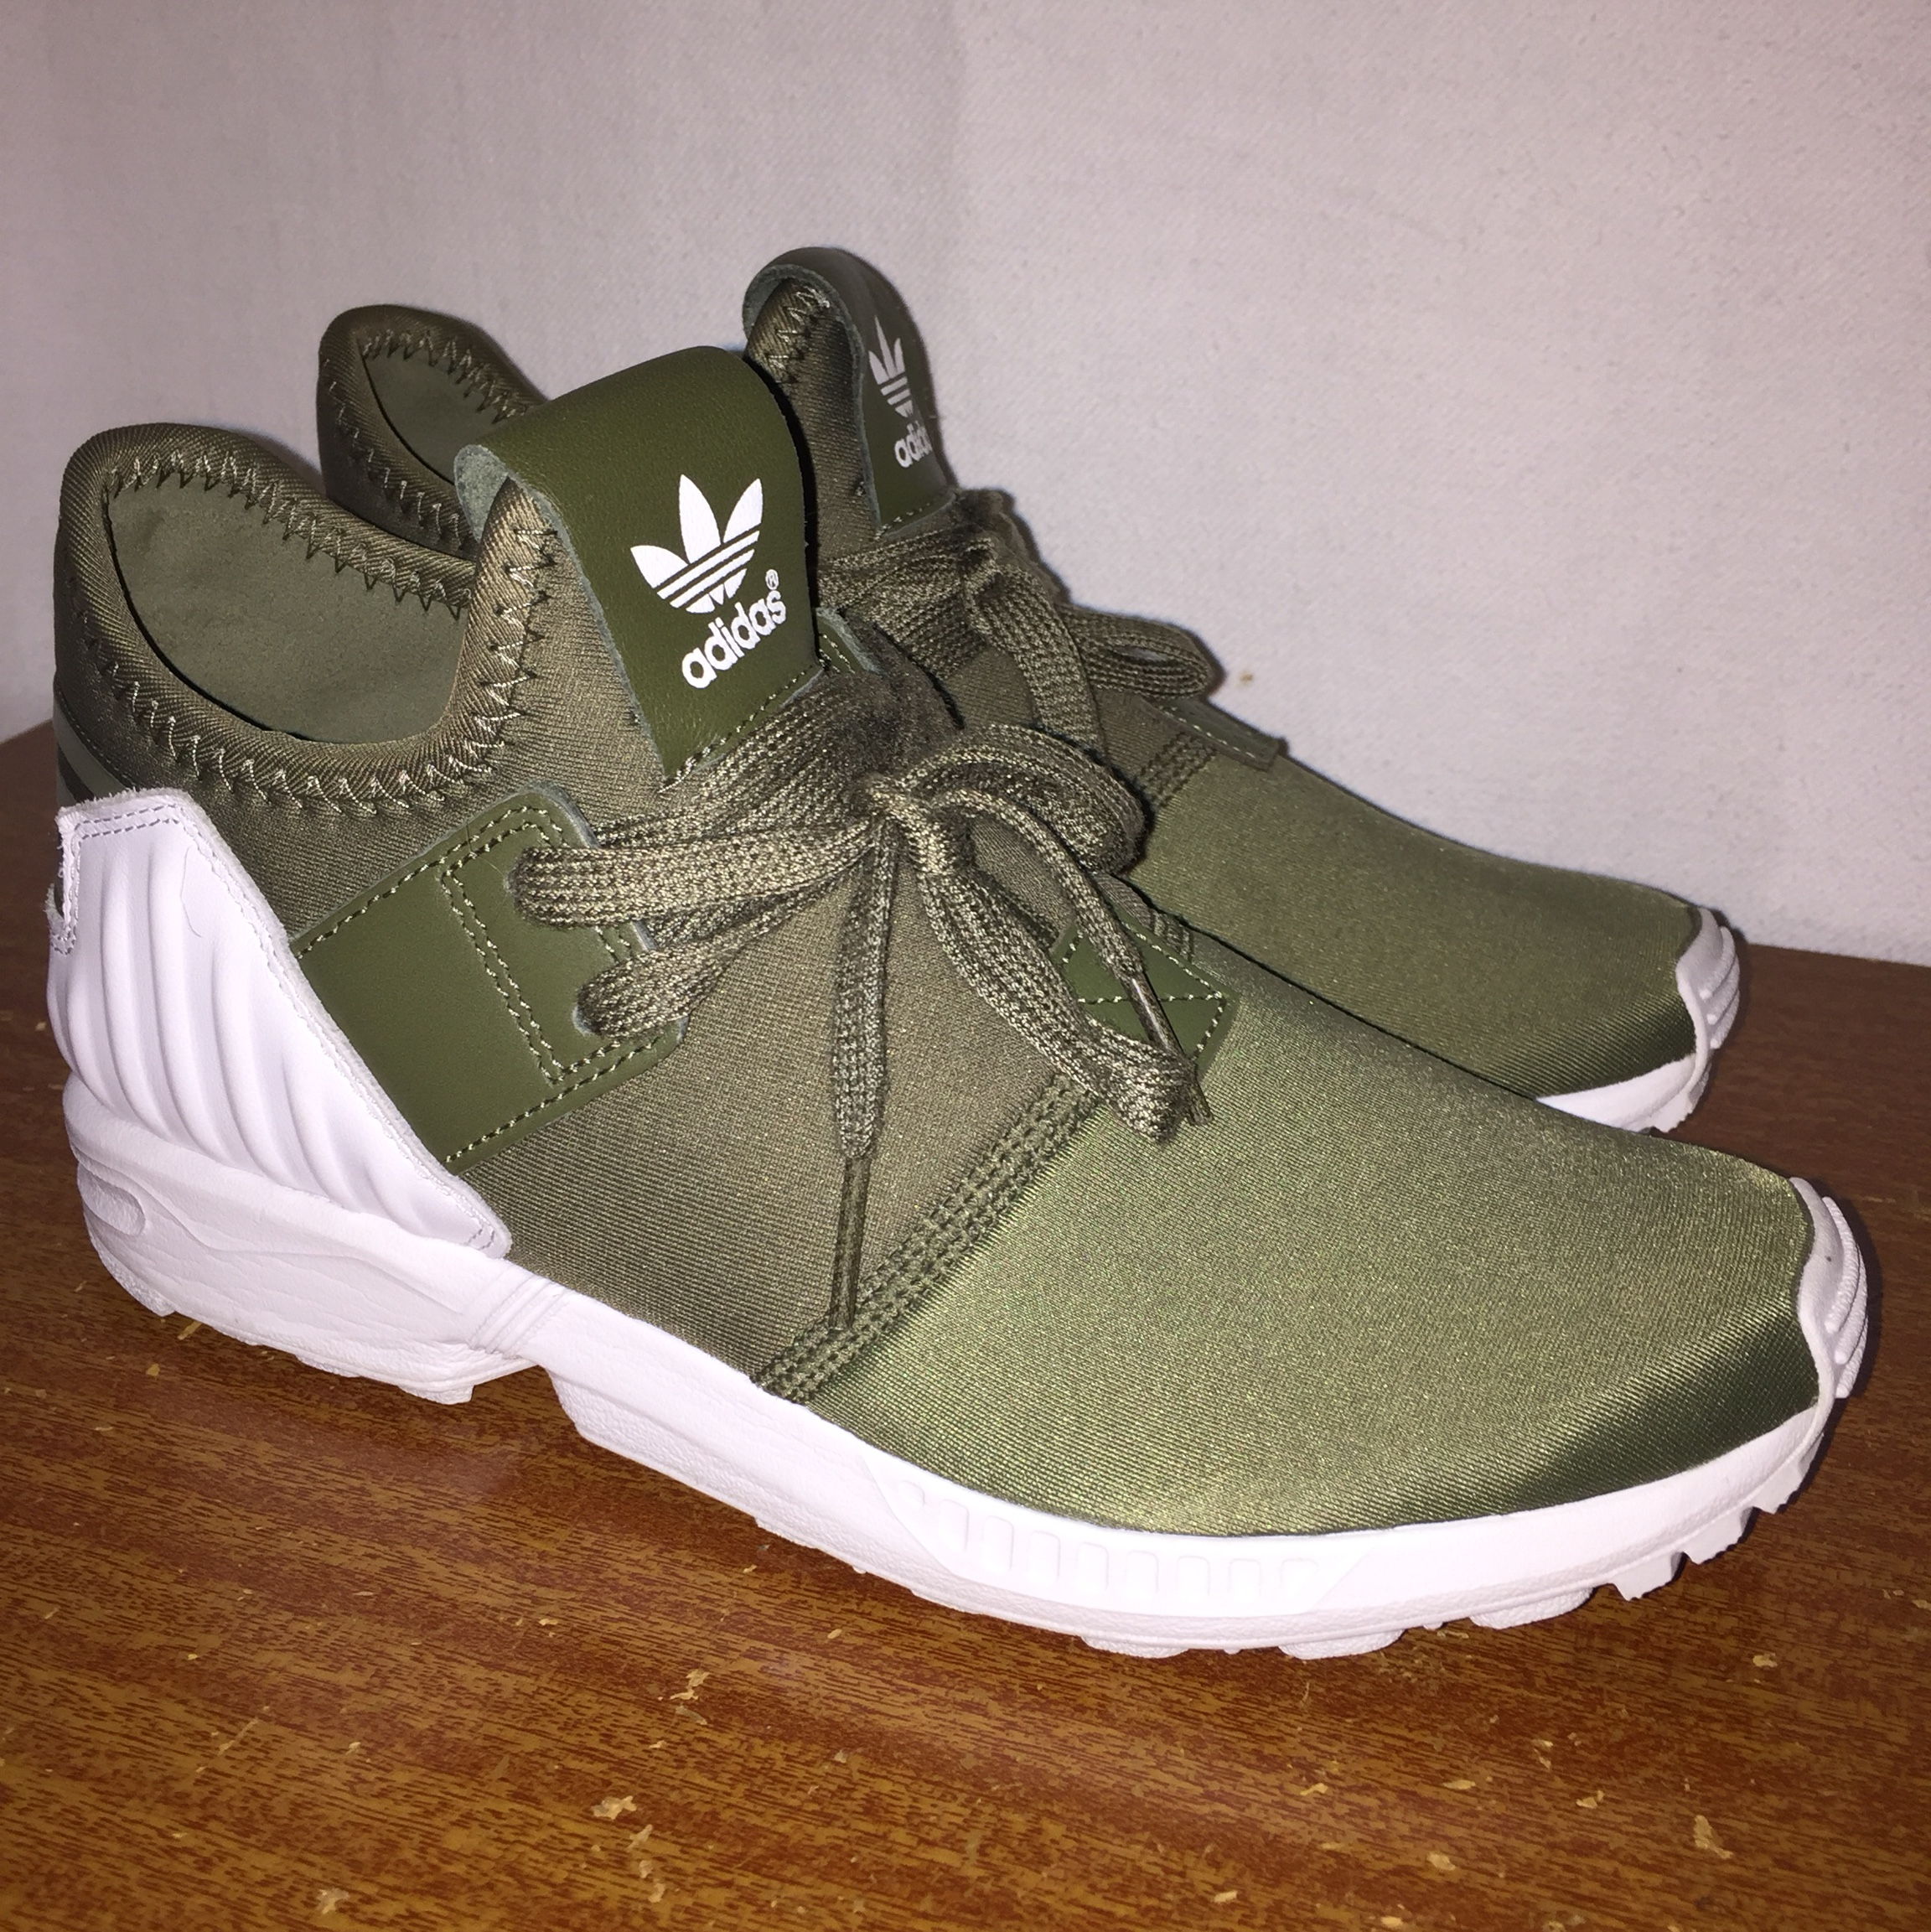 reputable site 5f526 d1735 Adidas zx flux plus olive green size woman's 5 never... - Depop